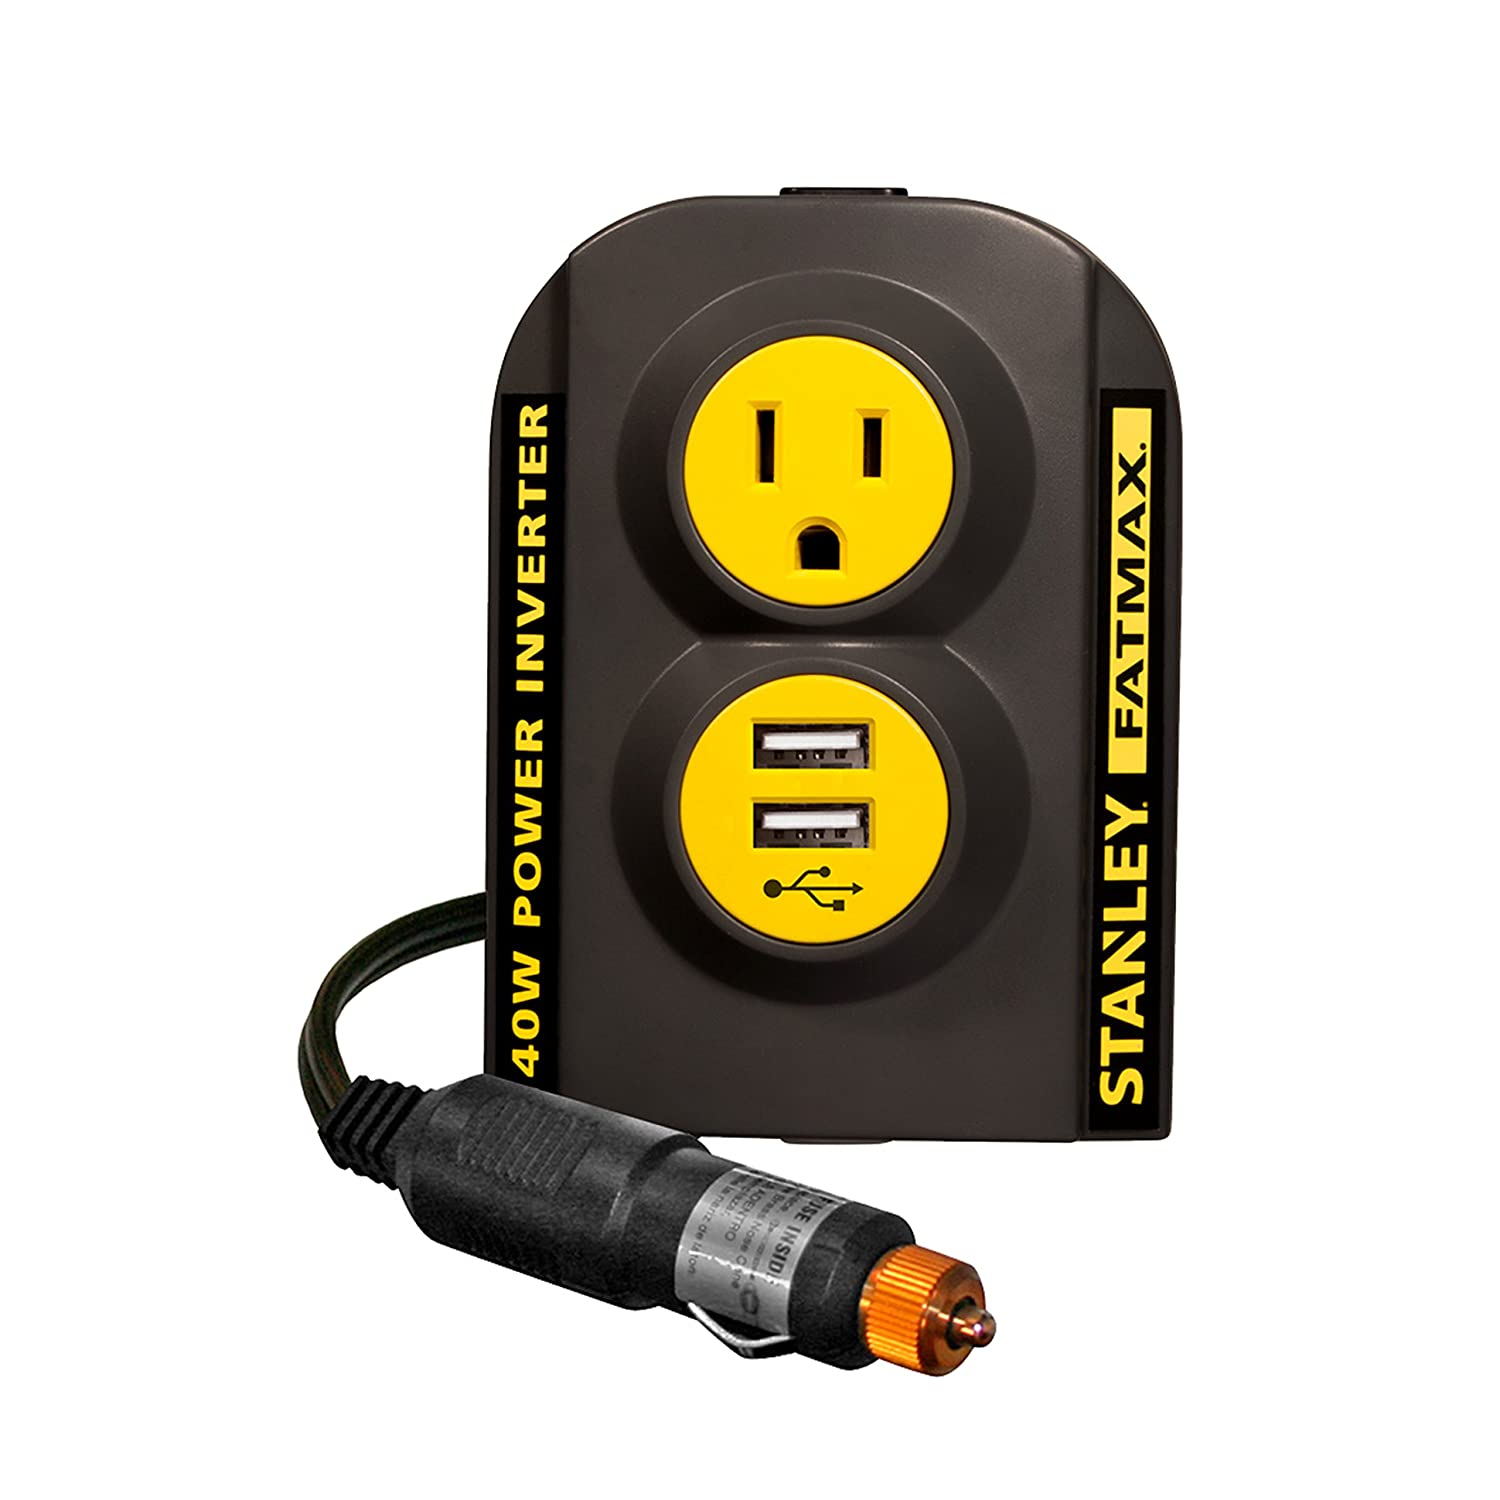 STANLEY FATMAX PCI140 140W Power Inverter 12V DC to 120V AC Power Outlet with Dual USB Ports